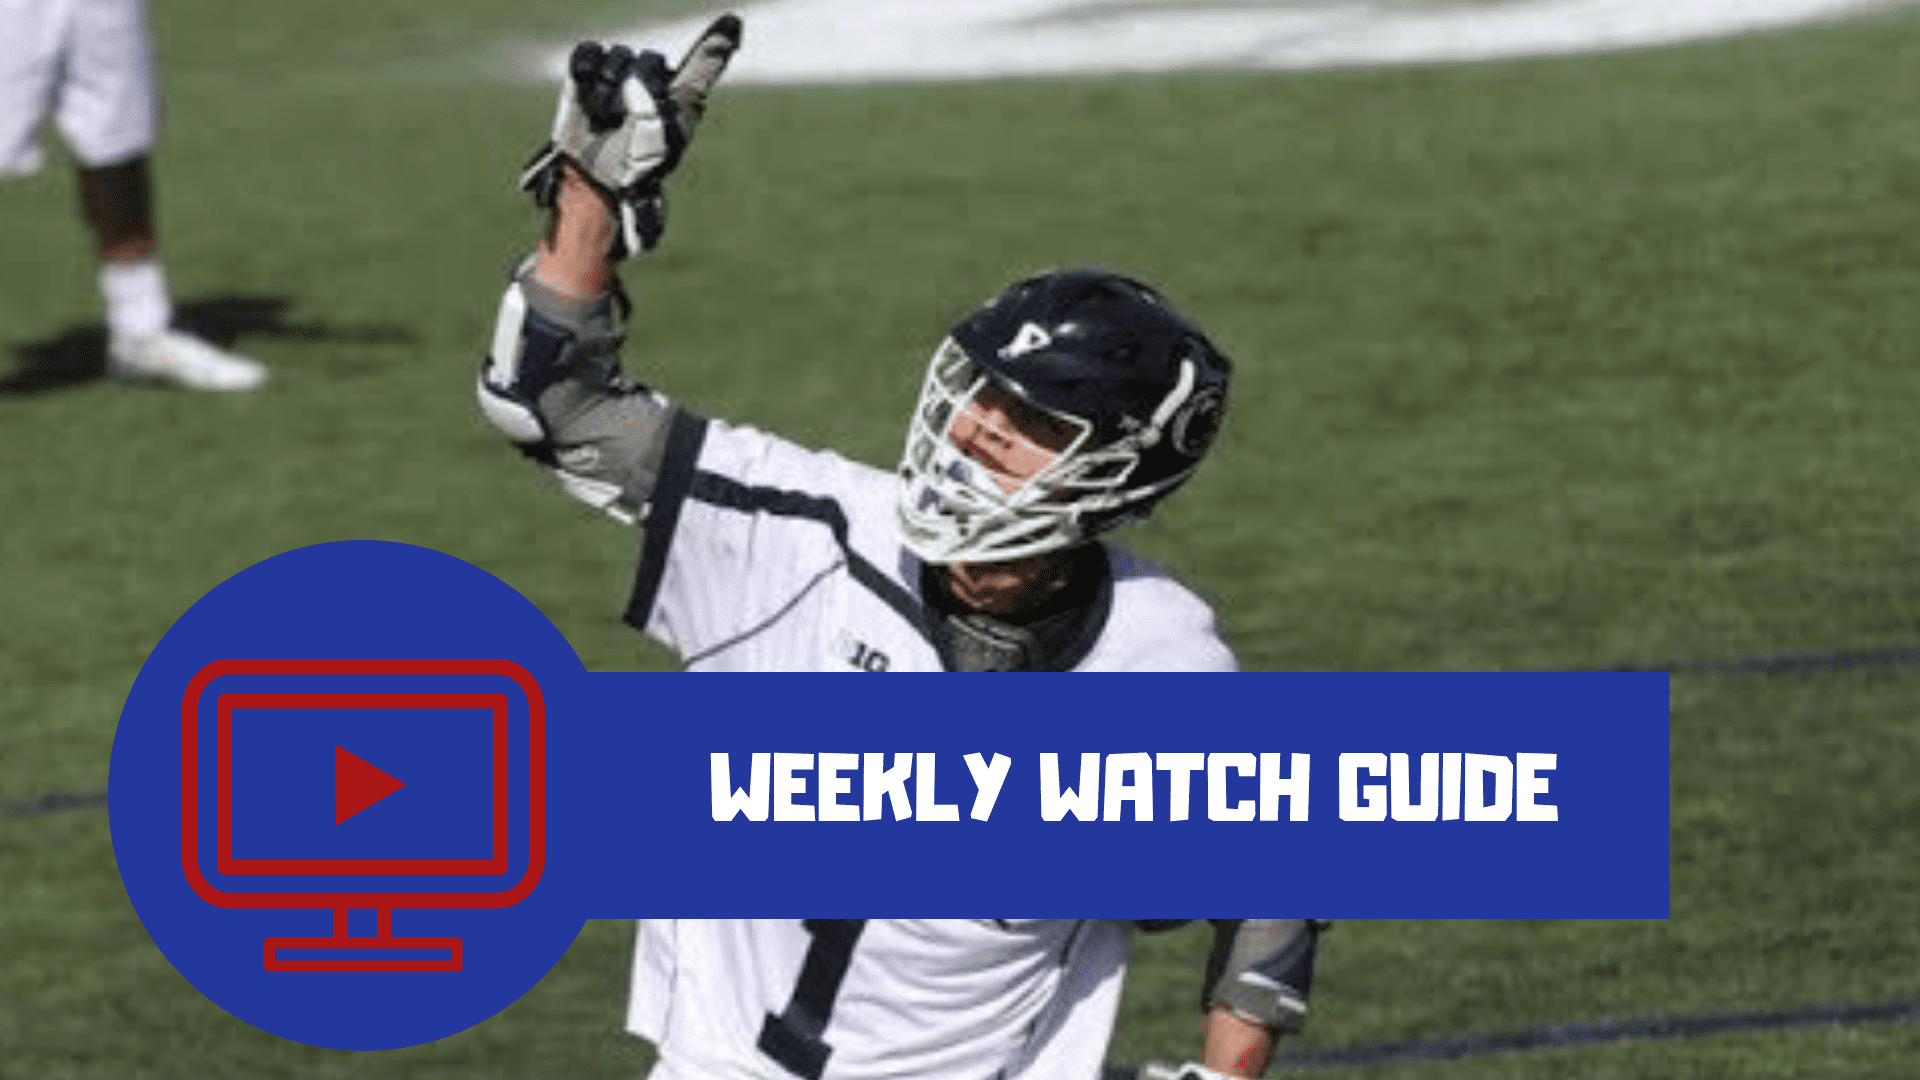 weekly watch guide tv